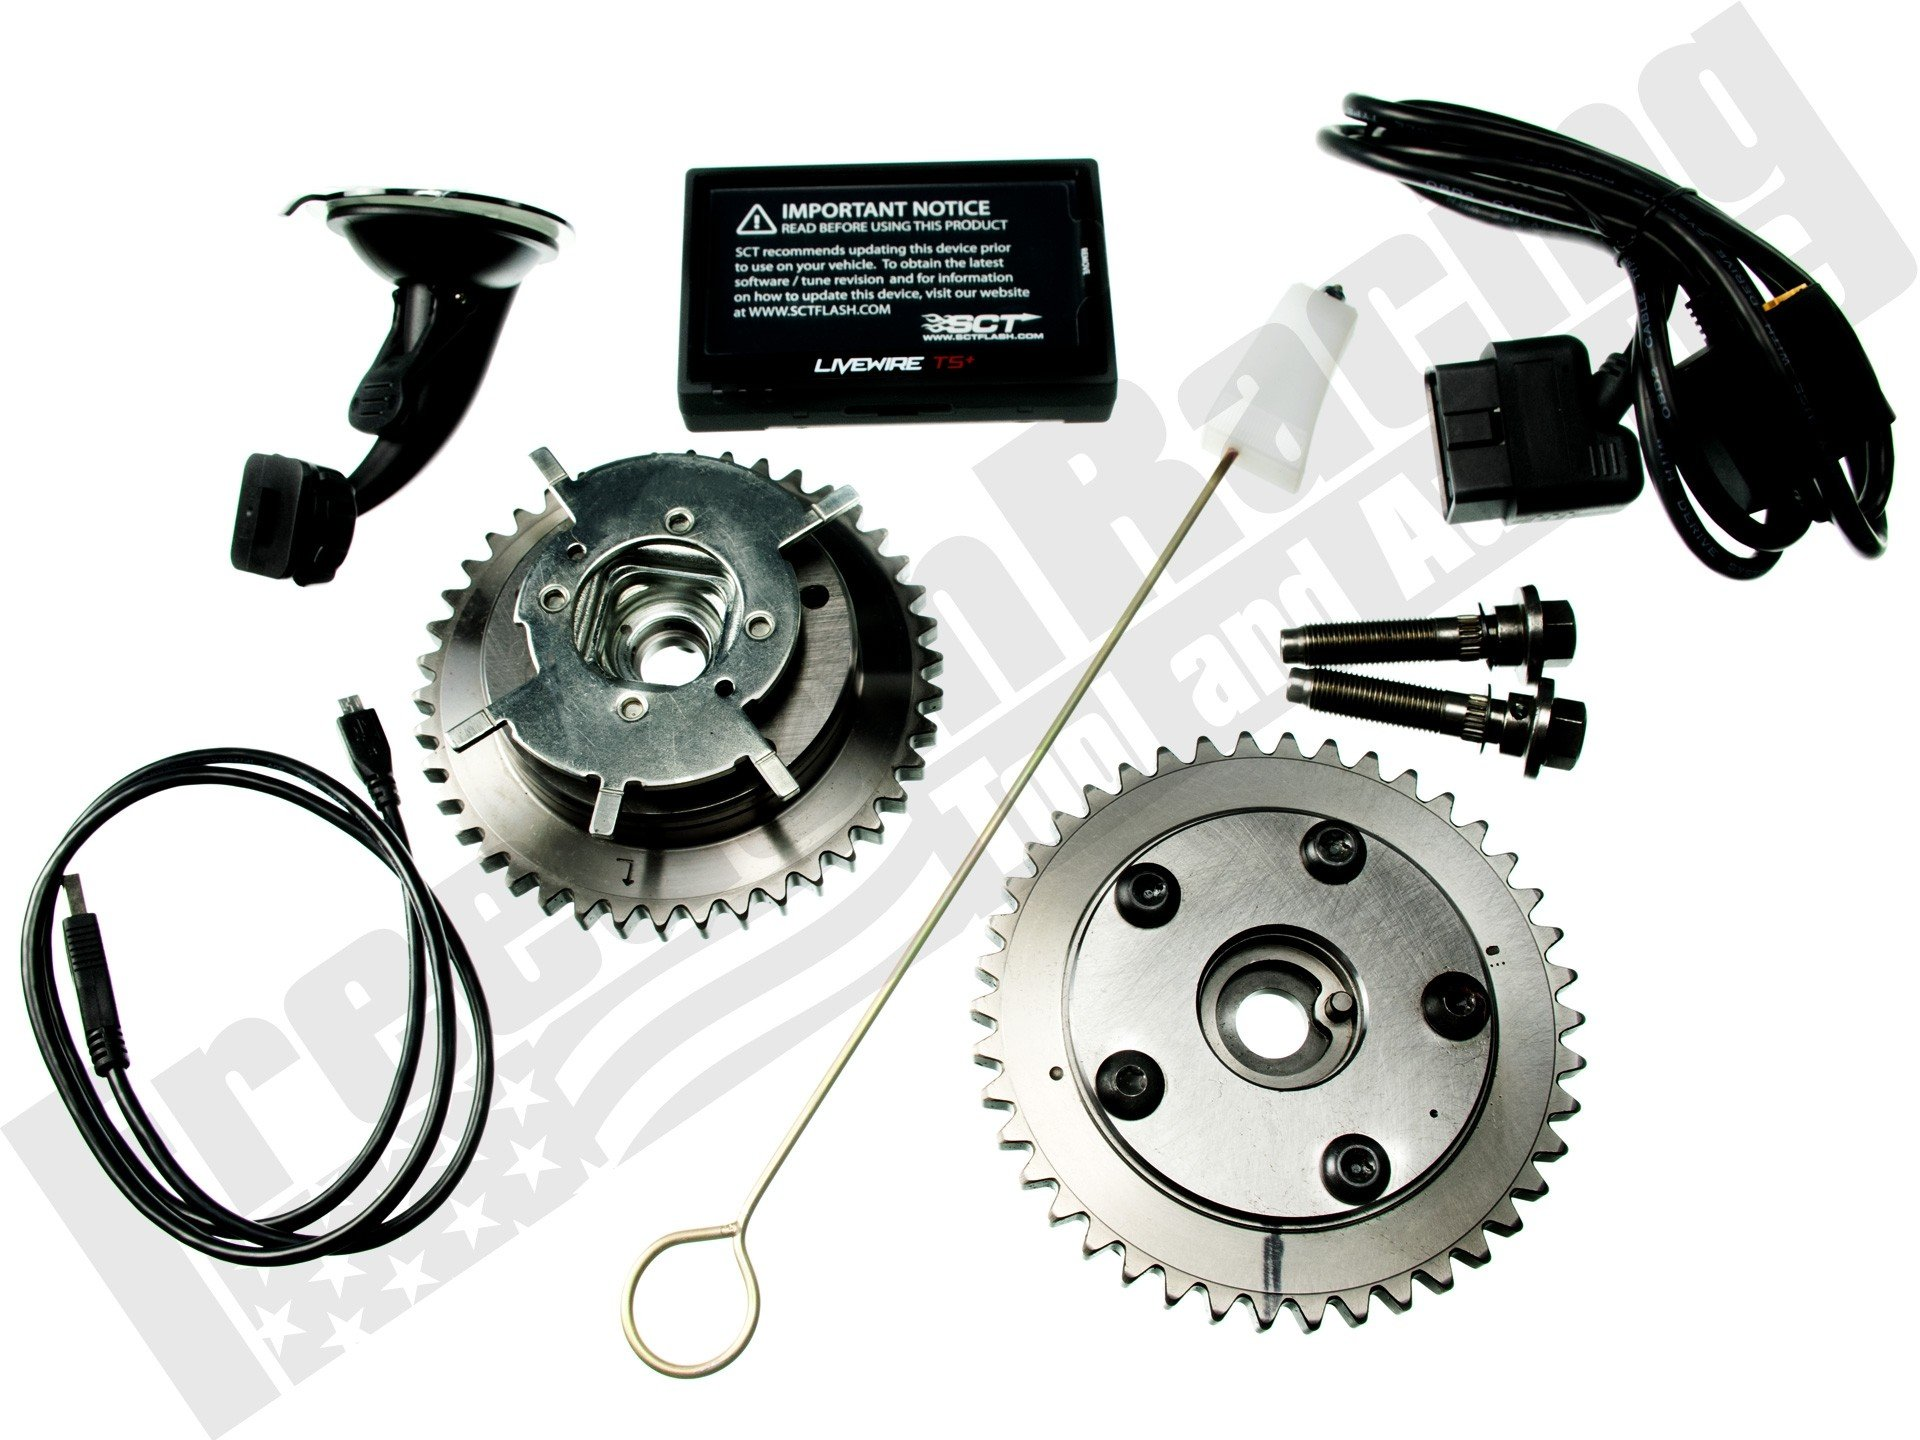 Locked Out Cam Phasers 4 6L 5 4L 3V VCT Elimination Kit w/5015 Tuner